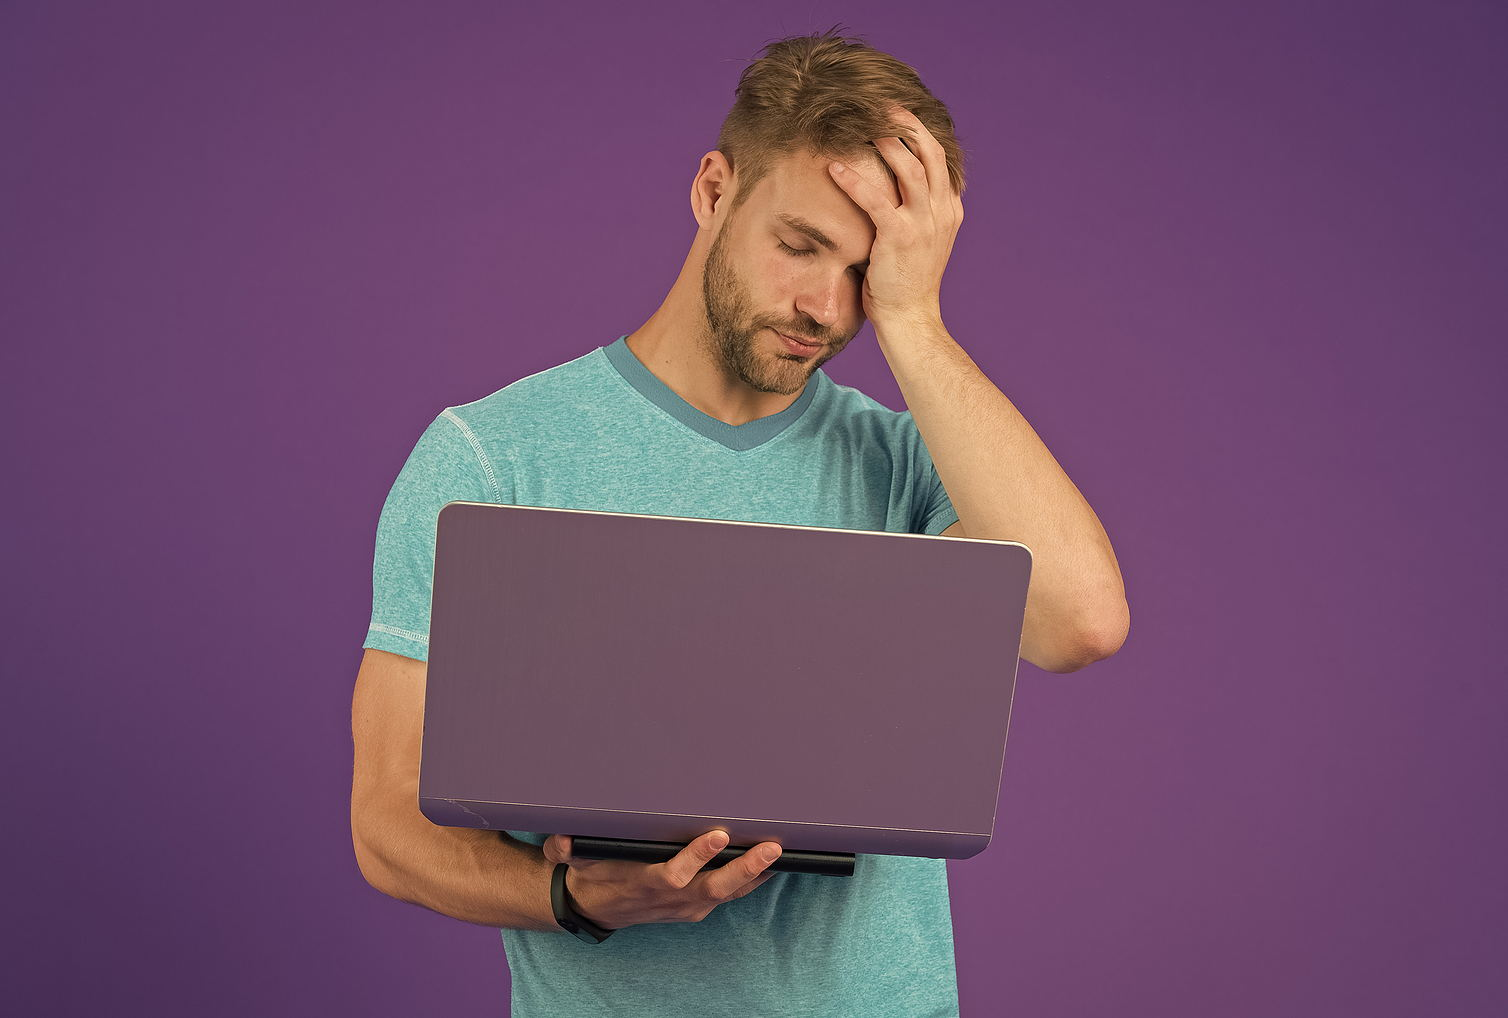 A tired man holds his computer in one hand and his head in the other worried against a purple background.